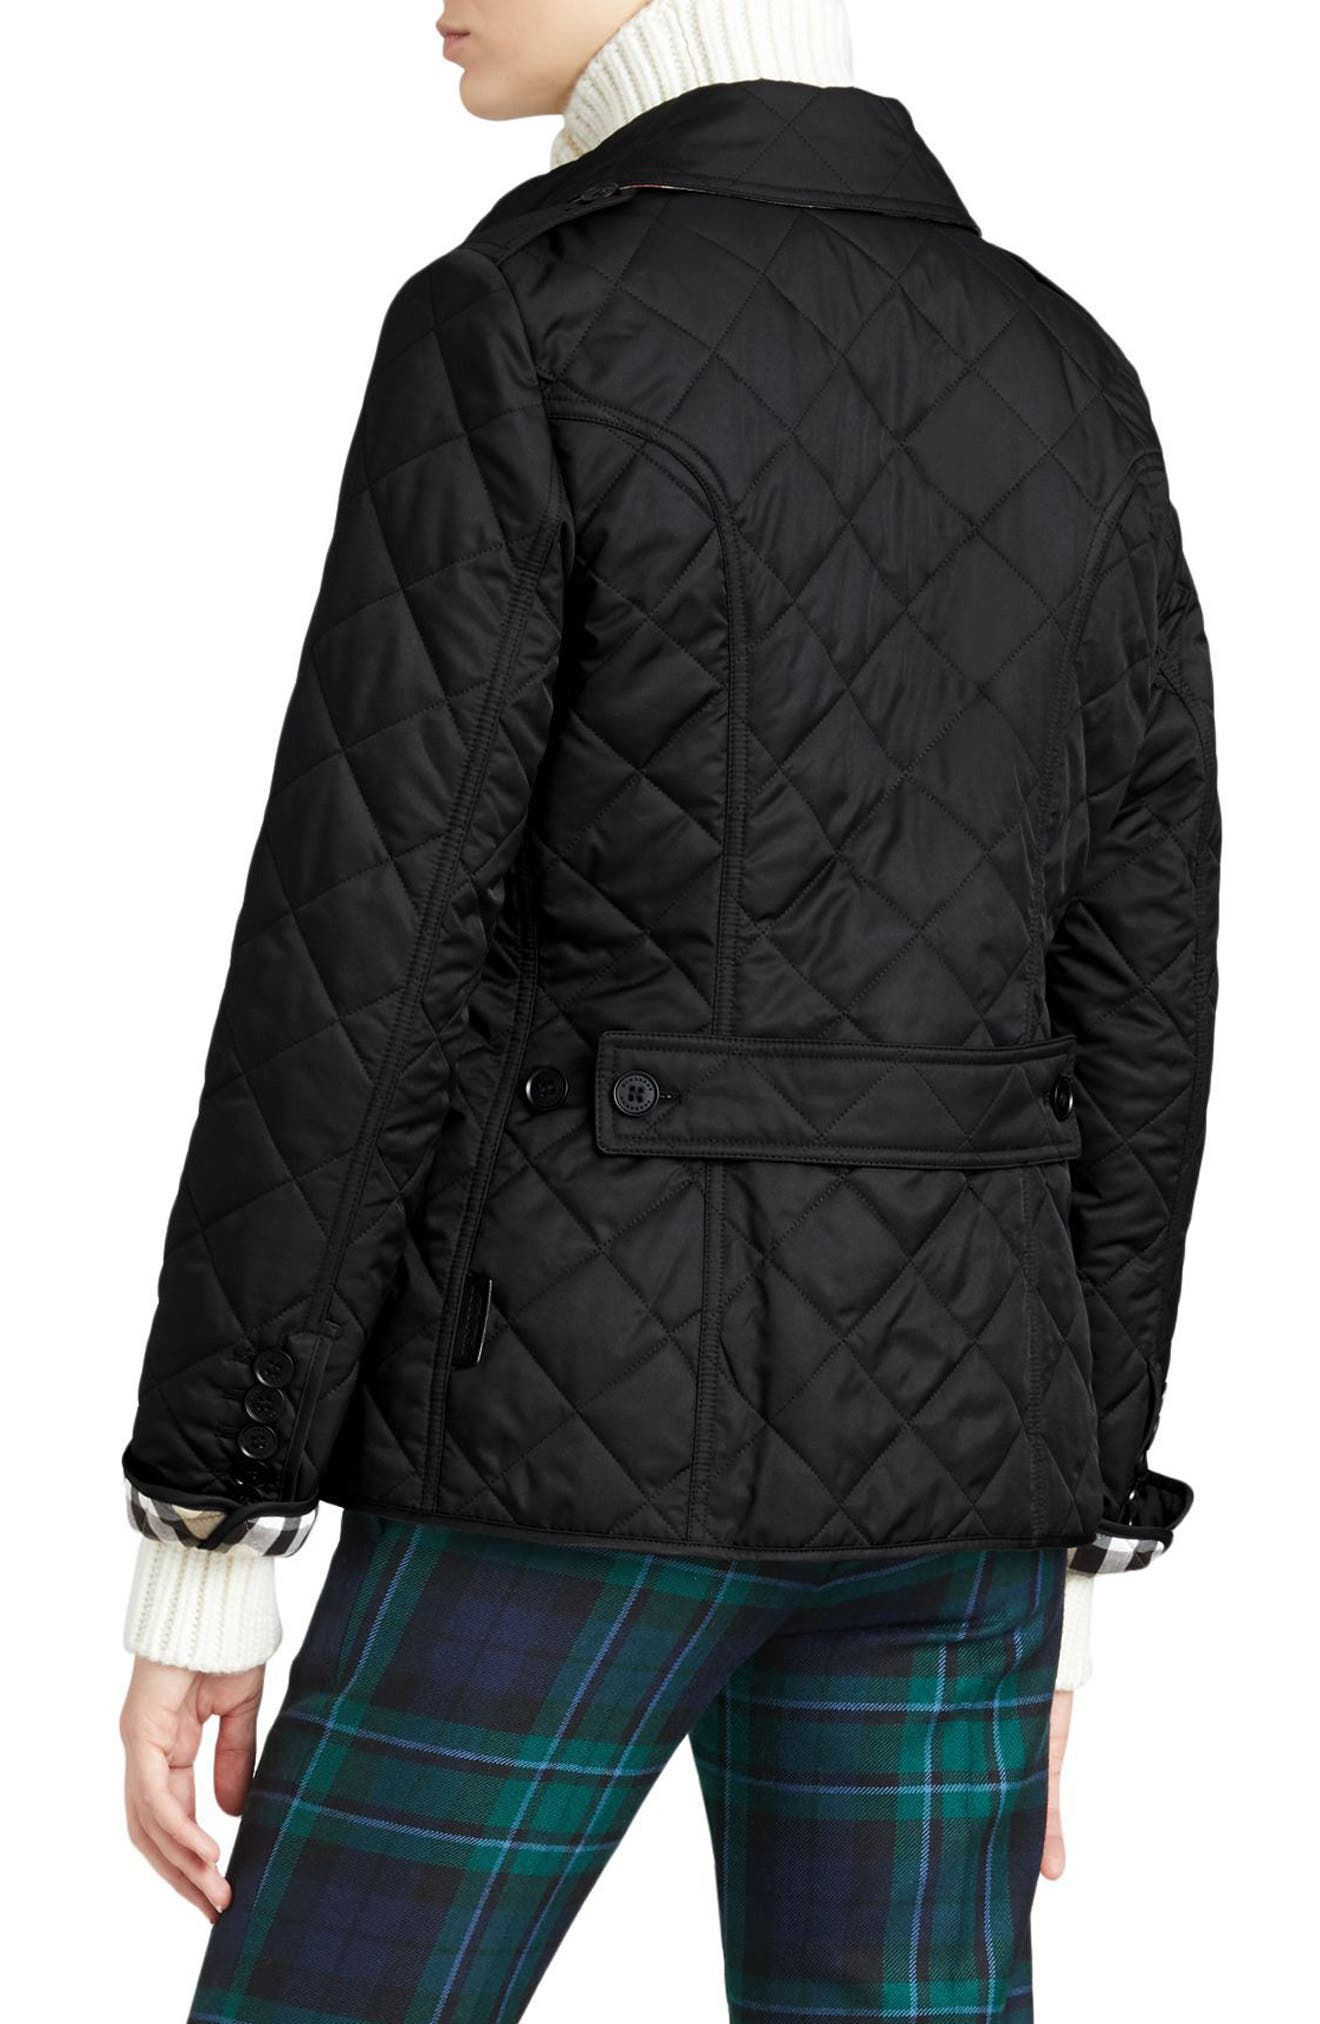 BURBERRY, Frankby Quilted Jacket, Alternate thumbnail 2, color, 001